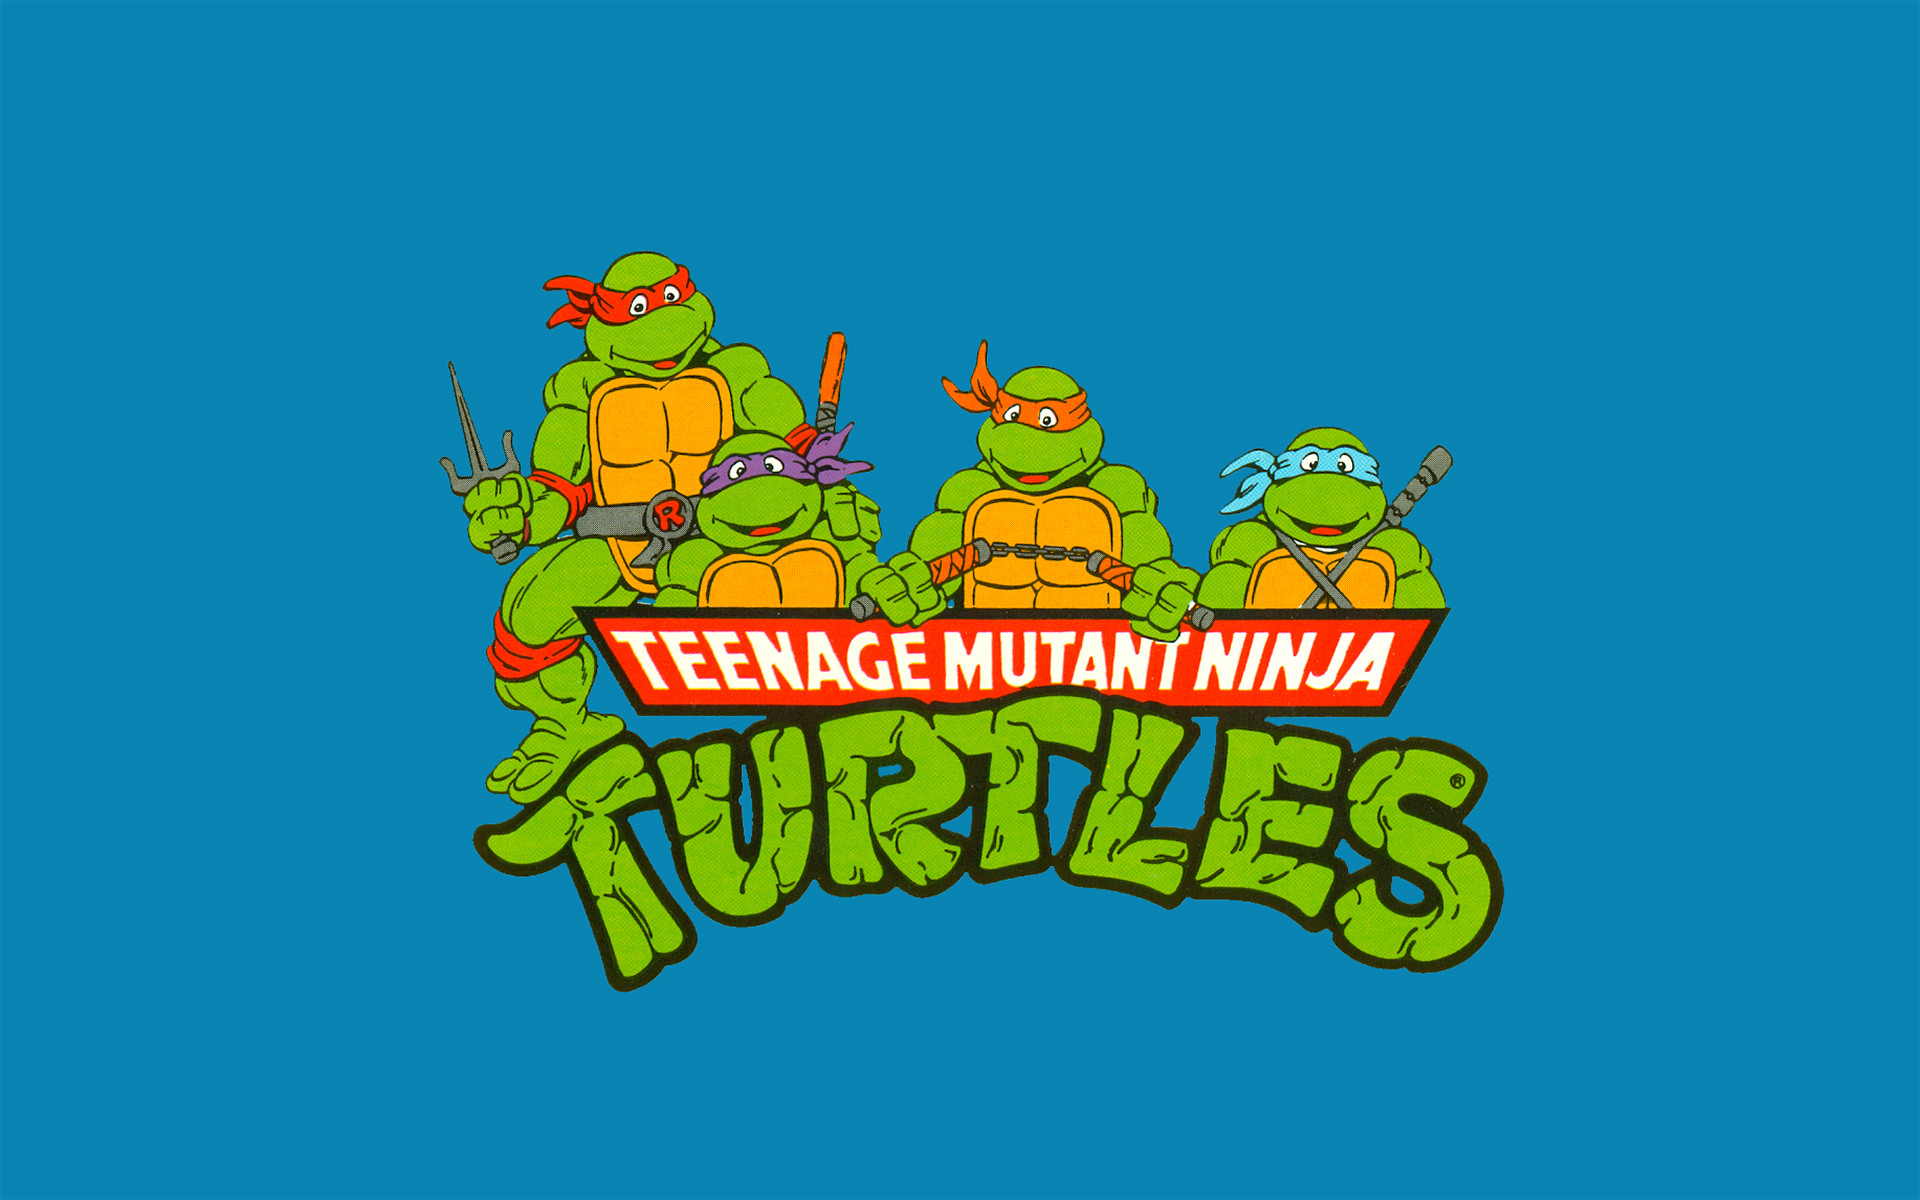 Teenage Mutant Ninja Turtles Wallpaper 68 Images